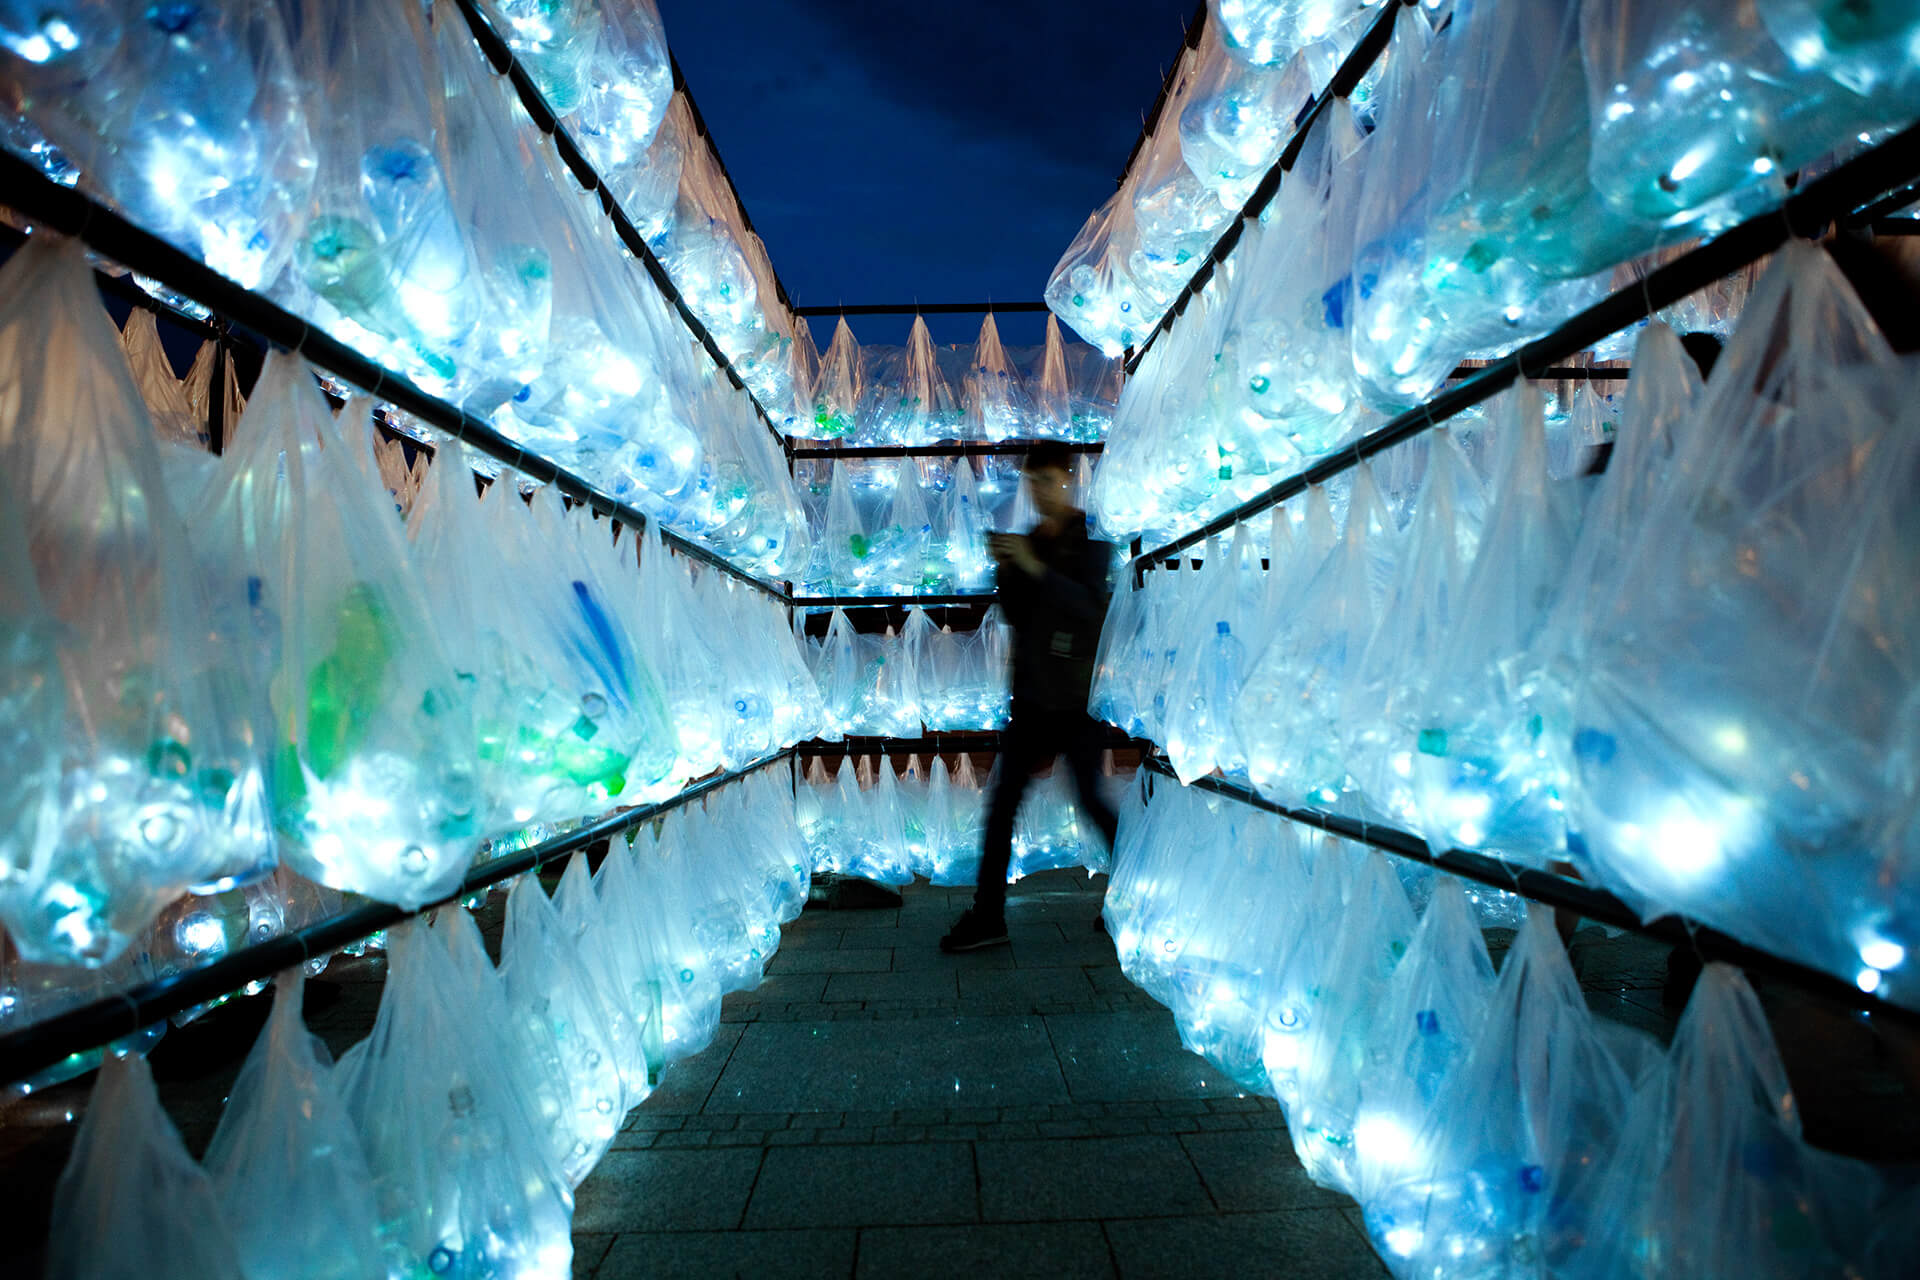 'Plastic Waste Labyrinth' by anonymous art collective Luzinterruptus | STIRworld